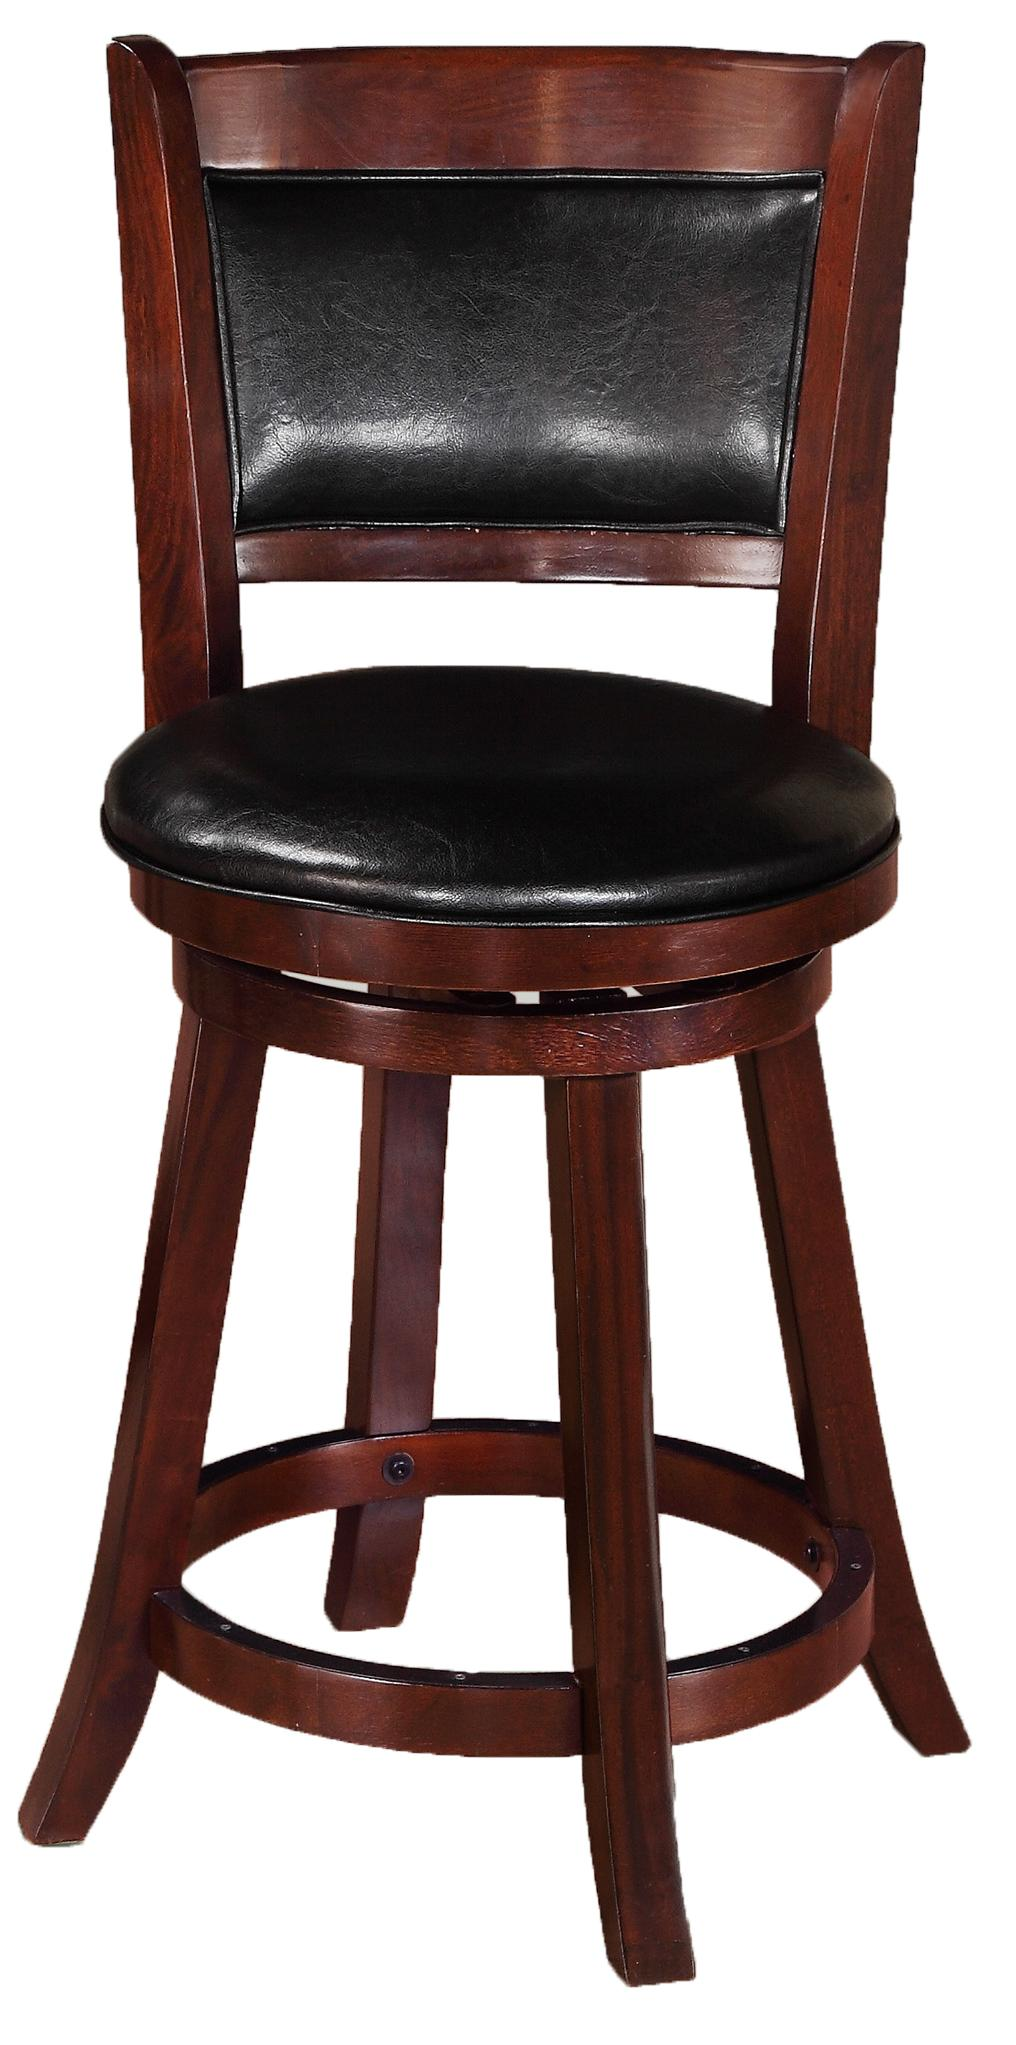 Bar Stools Low Swivel Chair by Crown Mark at Northeast Factory Direct